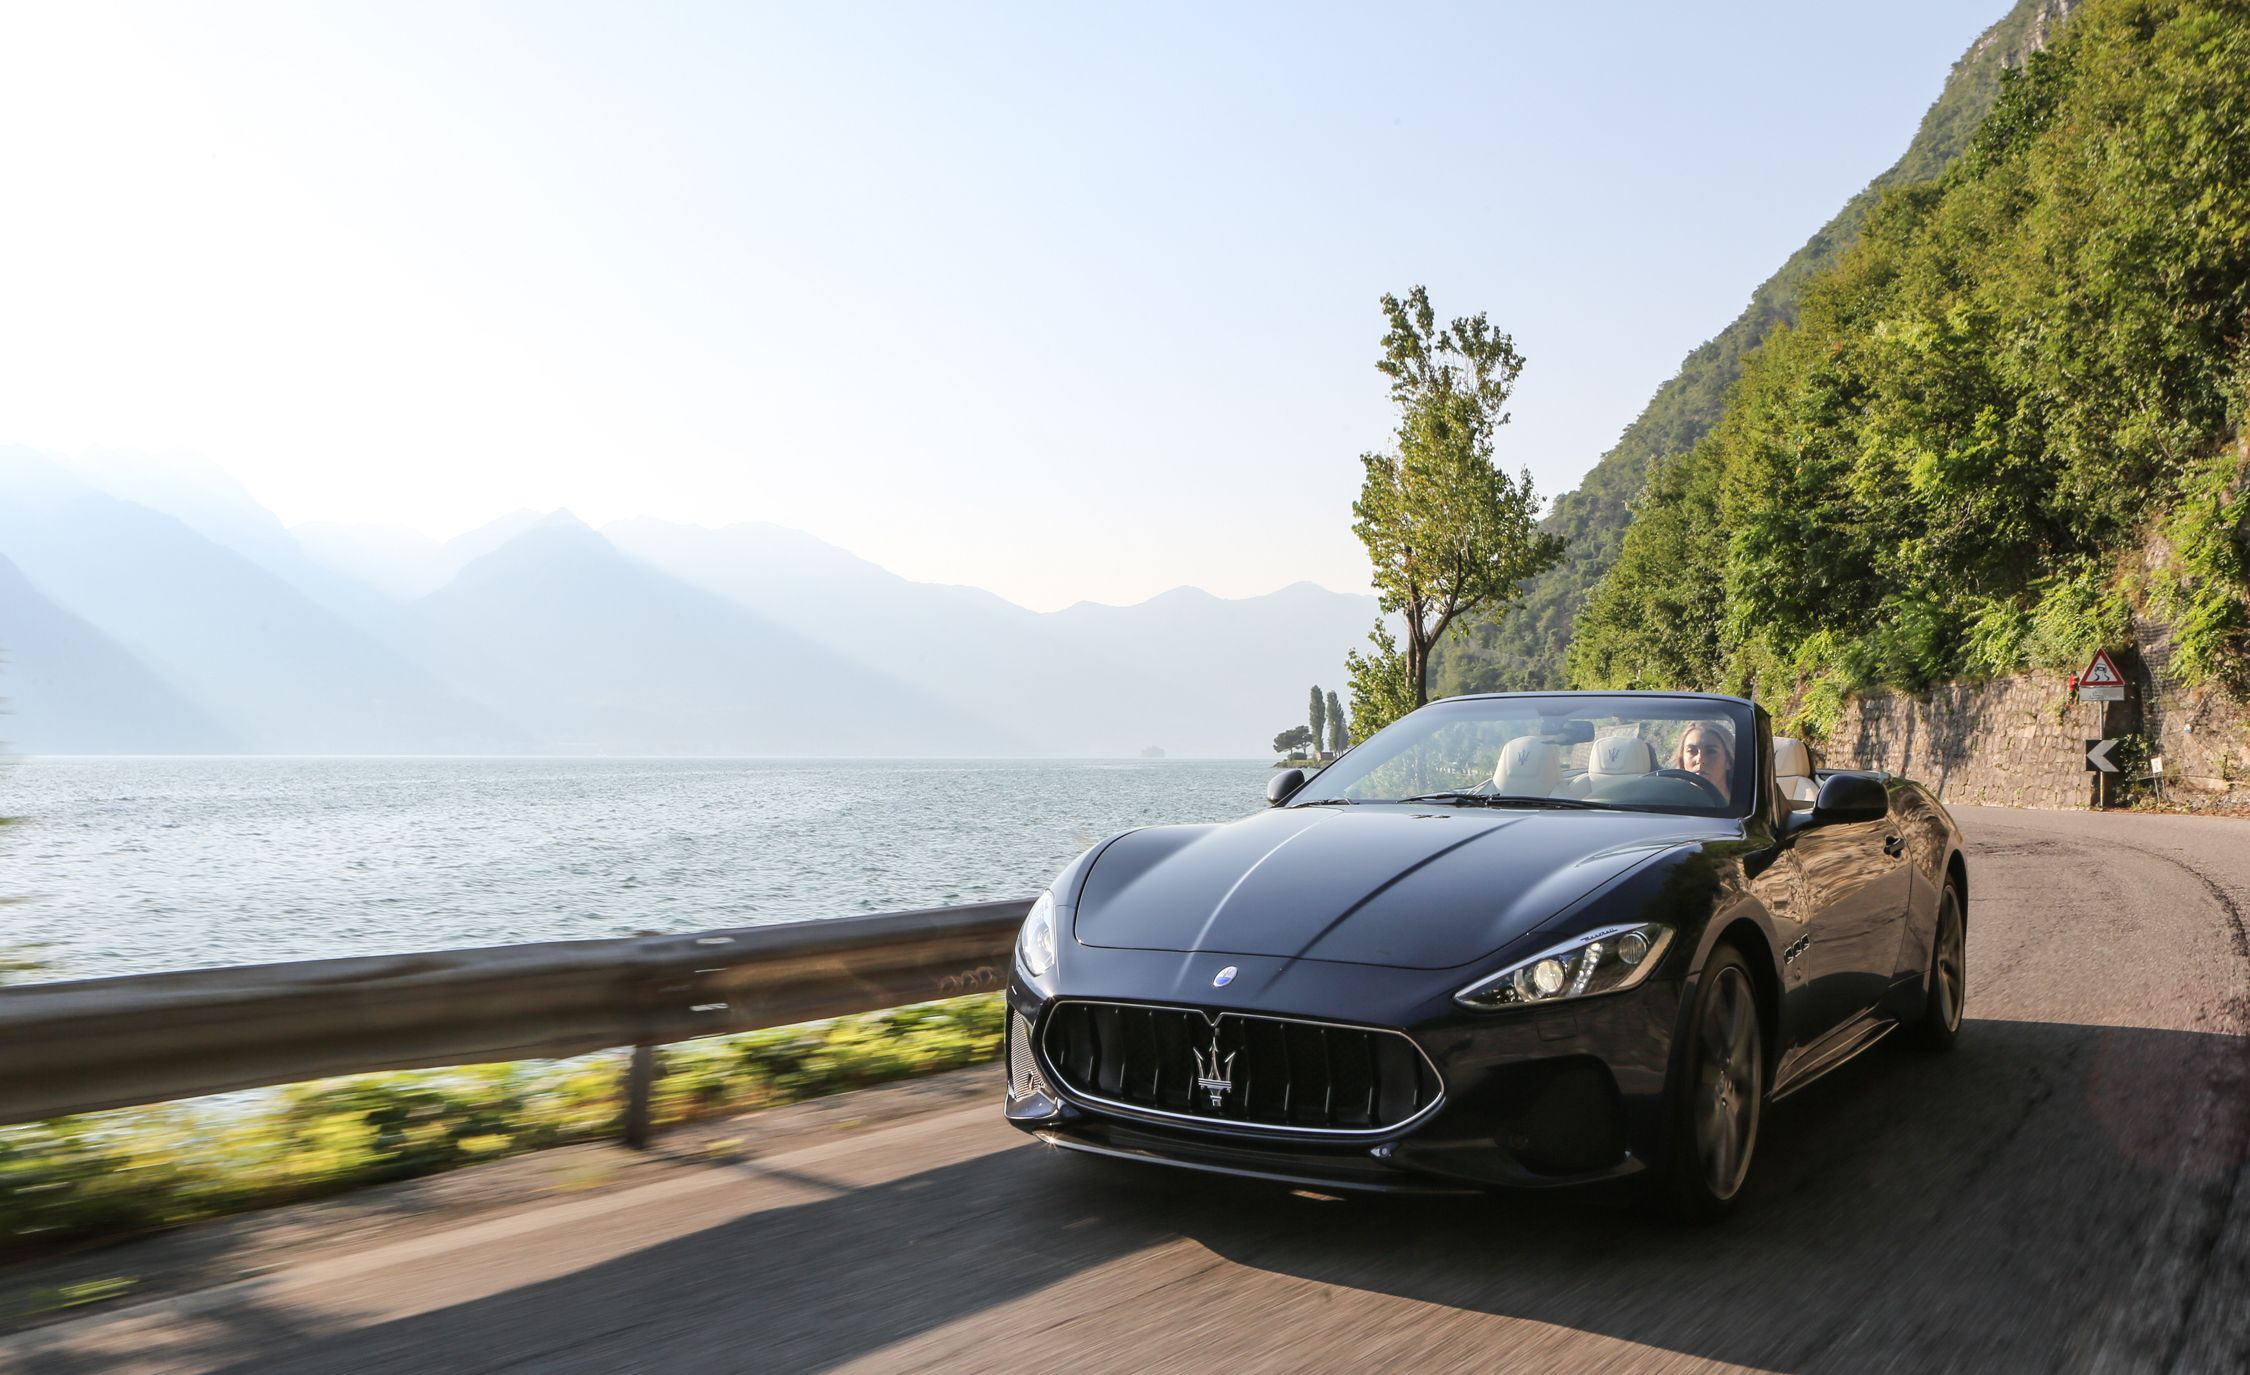 Maserati GranTurismo Reviews | Maserati GranTurismo Price, Photos, And  Specs | Car And Driver